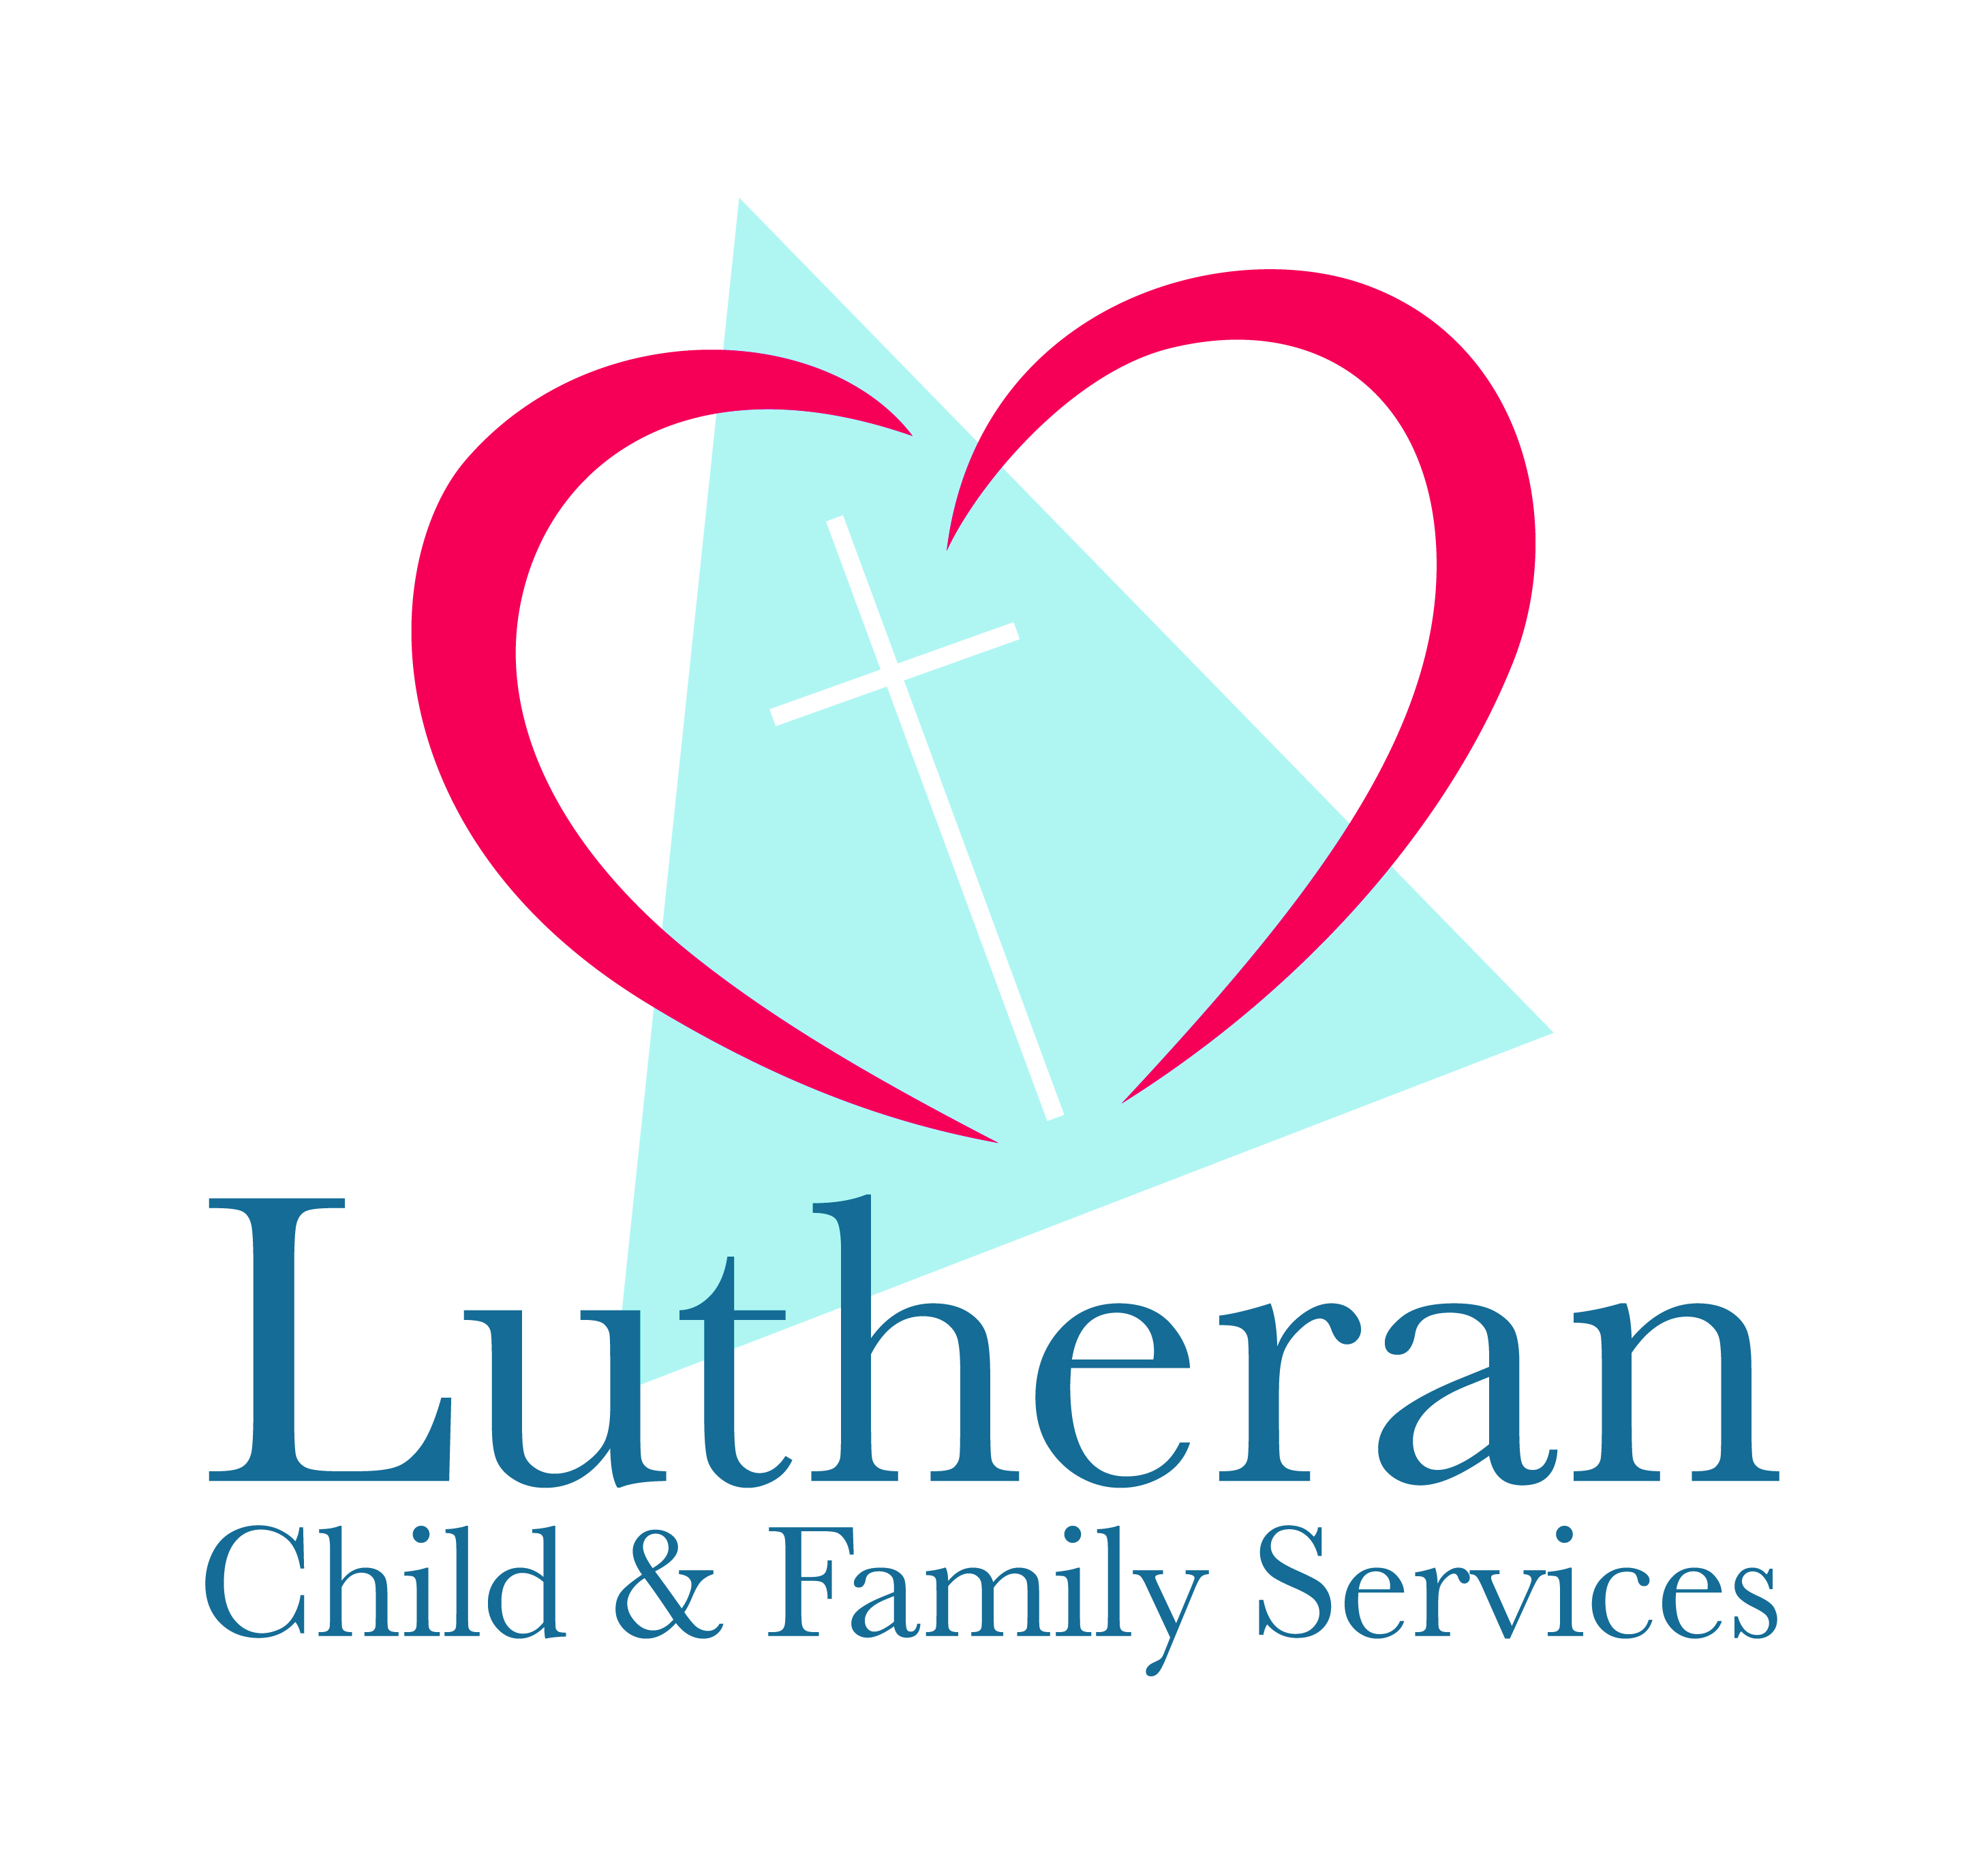 Lutheran Child and Family Services of Indiana/Kentucky, Inc.